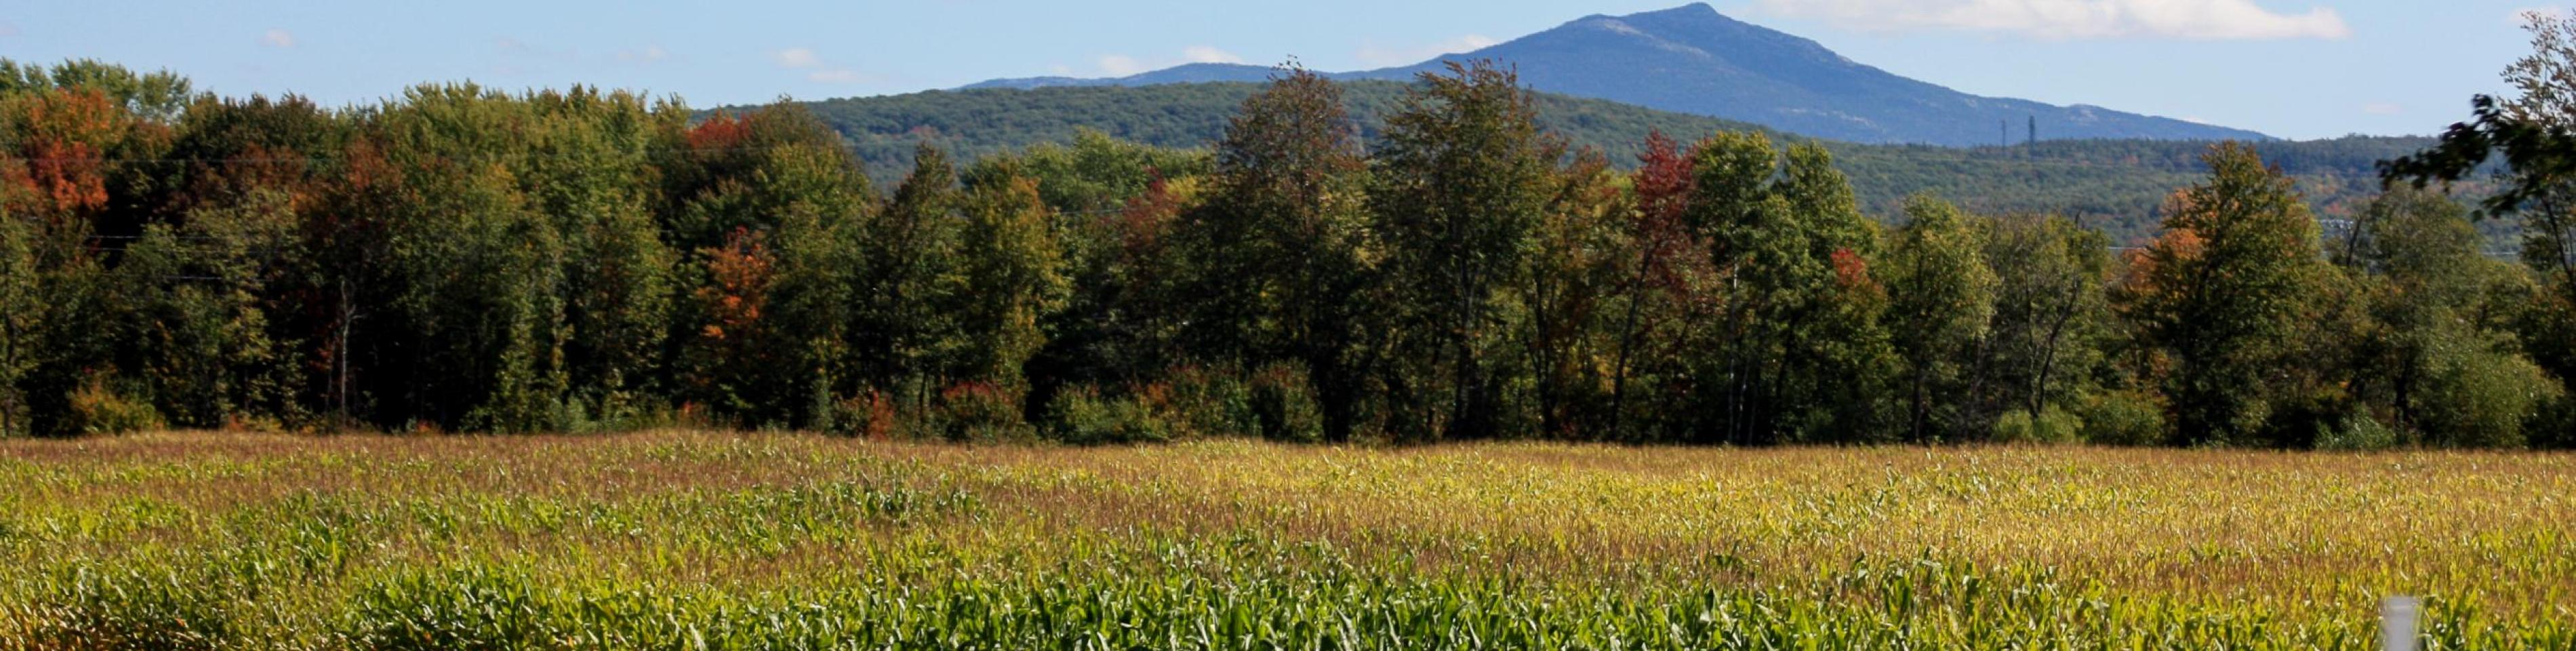 Mount Monadnock View From Keene Corn Field